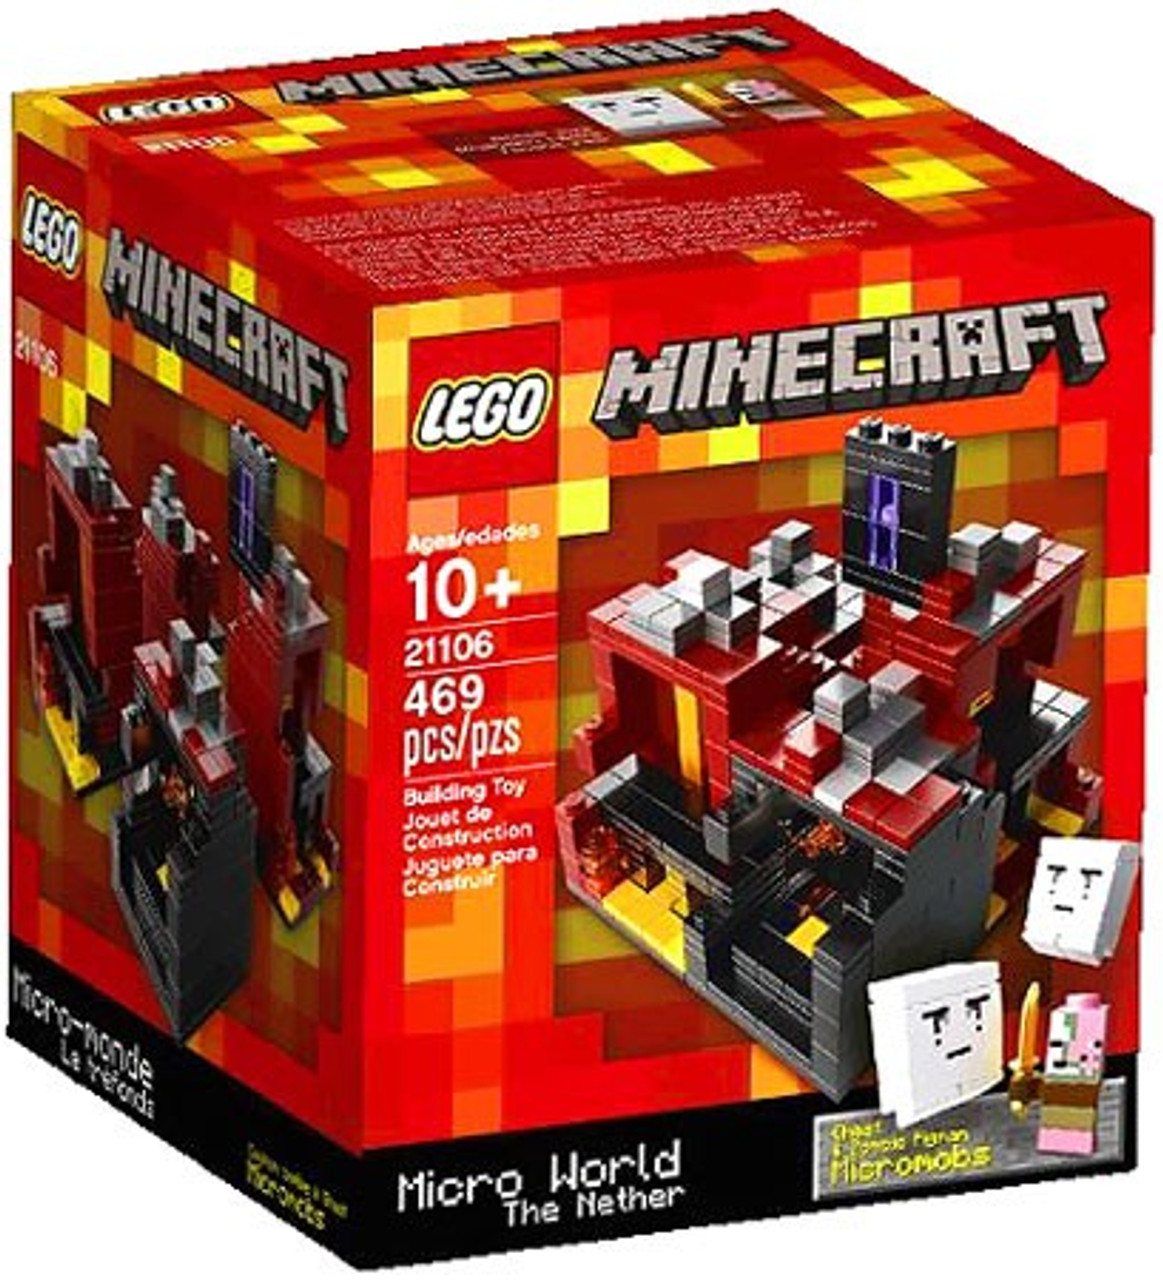 LEGO Minecraft Micro World The Nether Set #21106